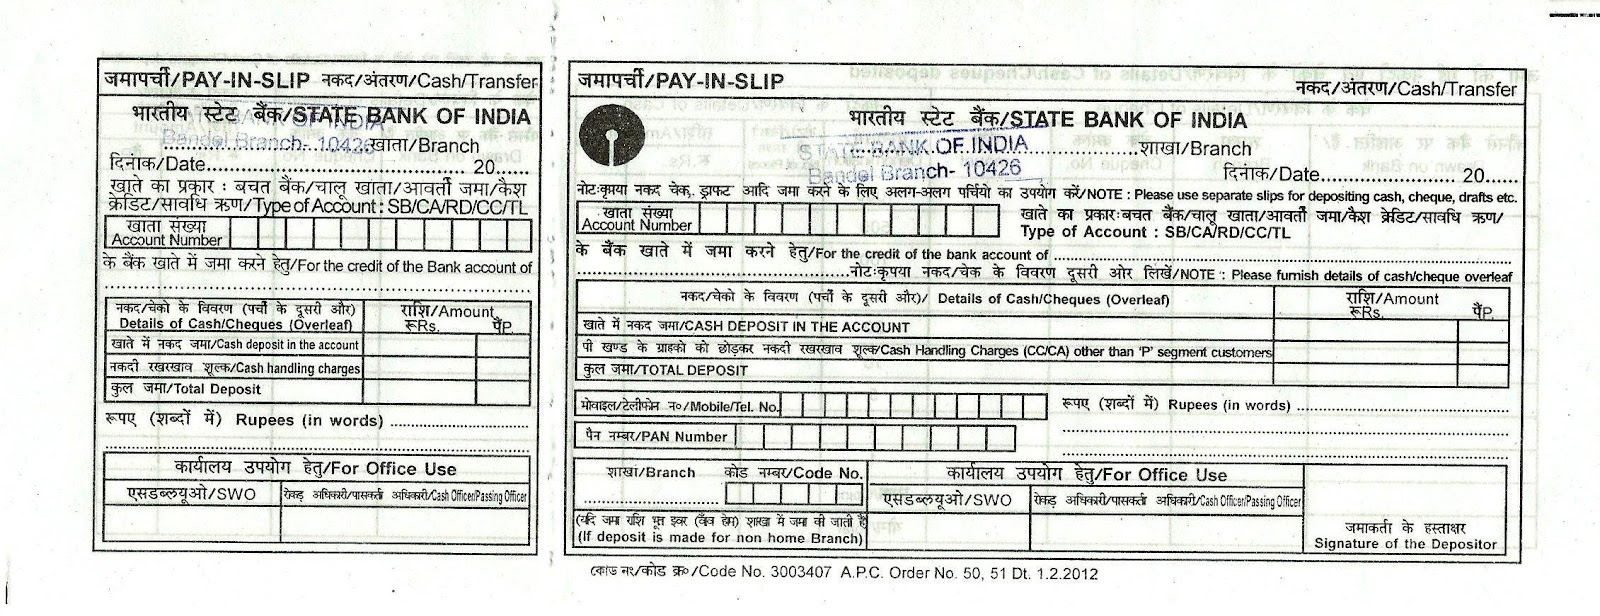 Beautiful Indian Bank Pay In Slips For Cash/Instrument Depositions With Pay In Slips